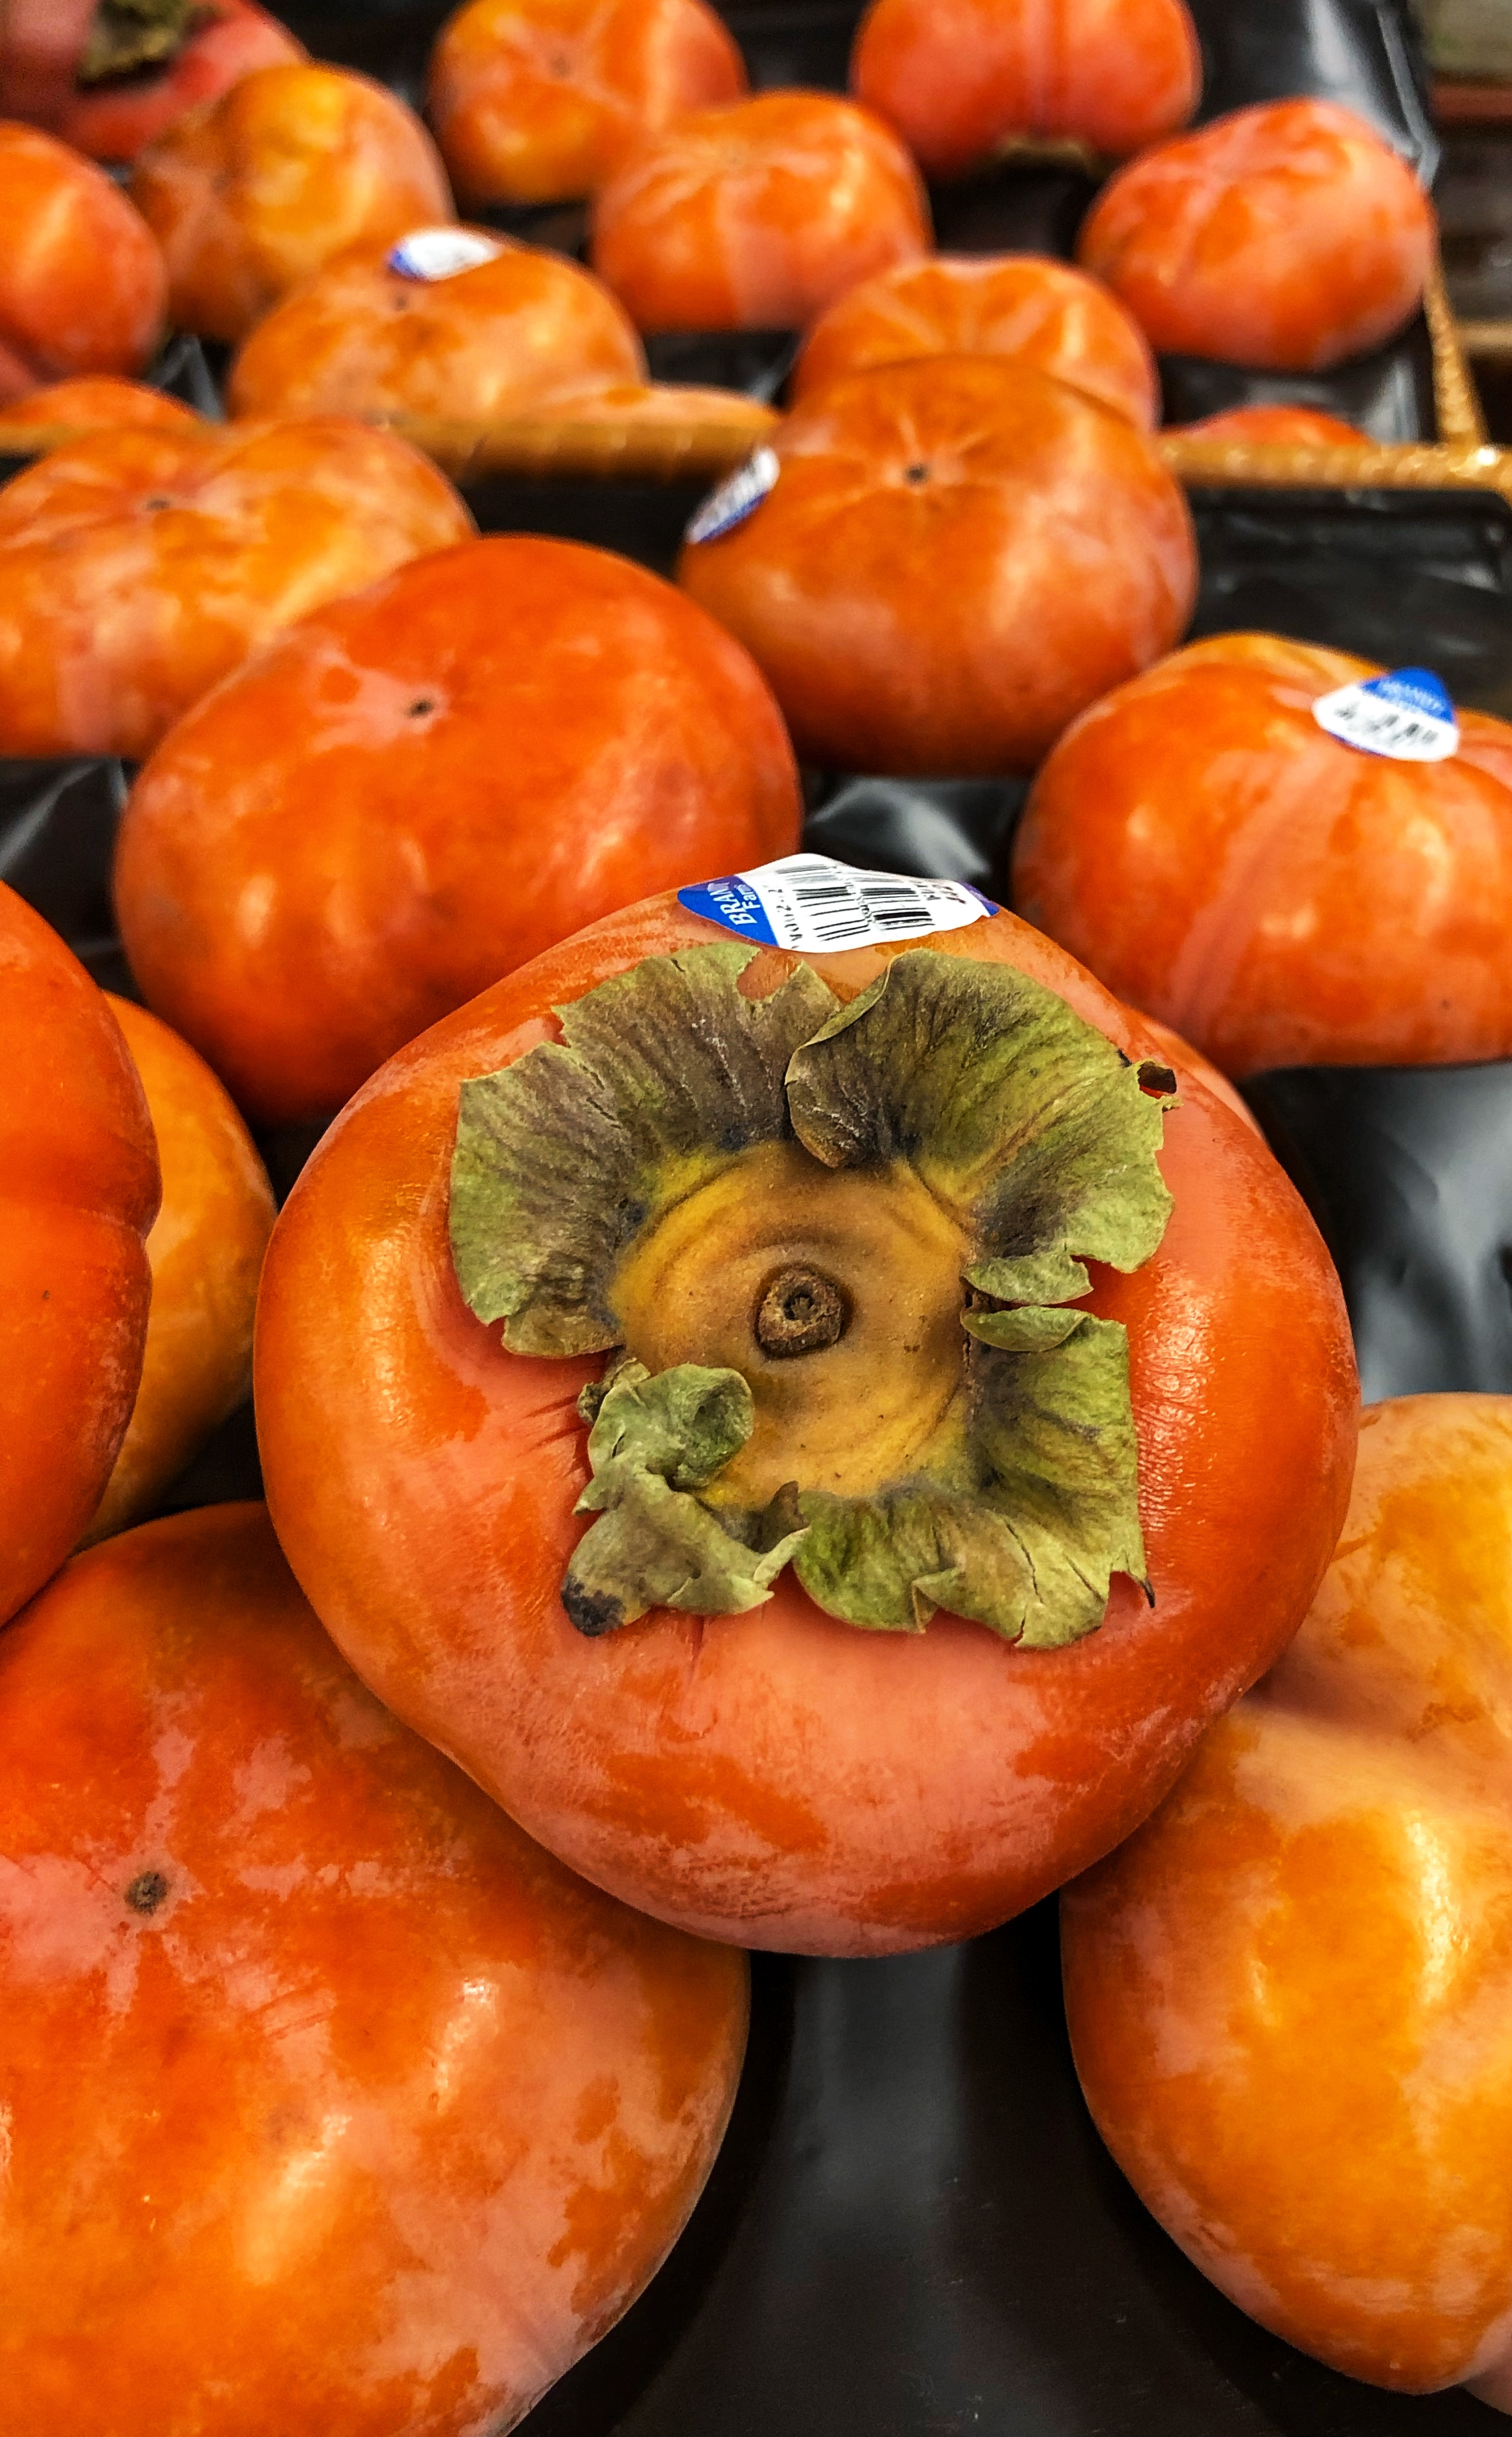 Fuyu persimmons at Russo's.